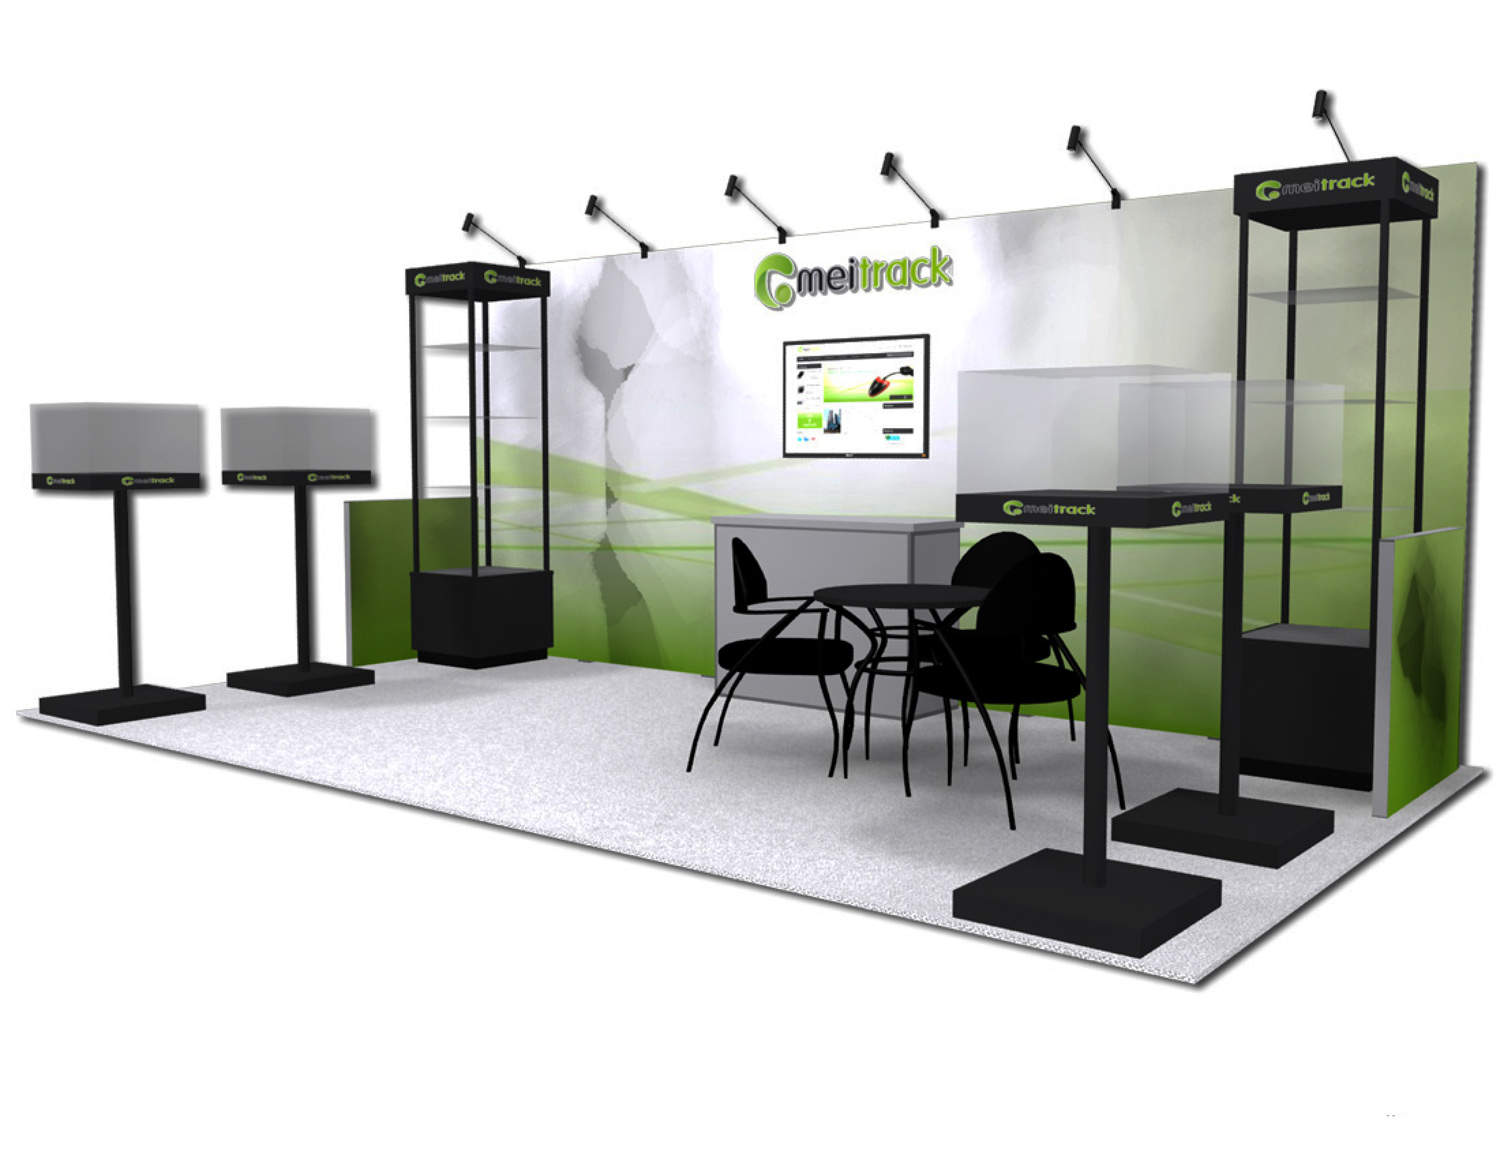 Meitrack 10x20 Trade Show Booth